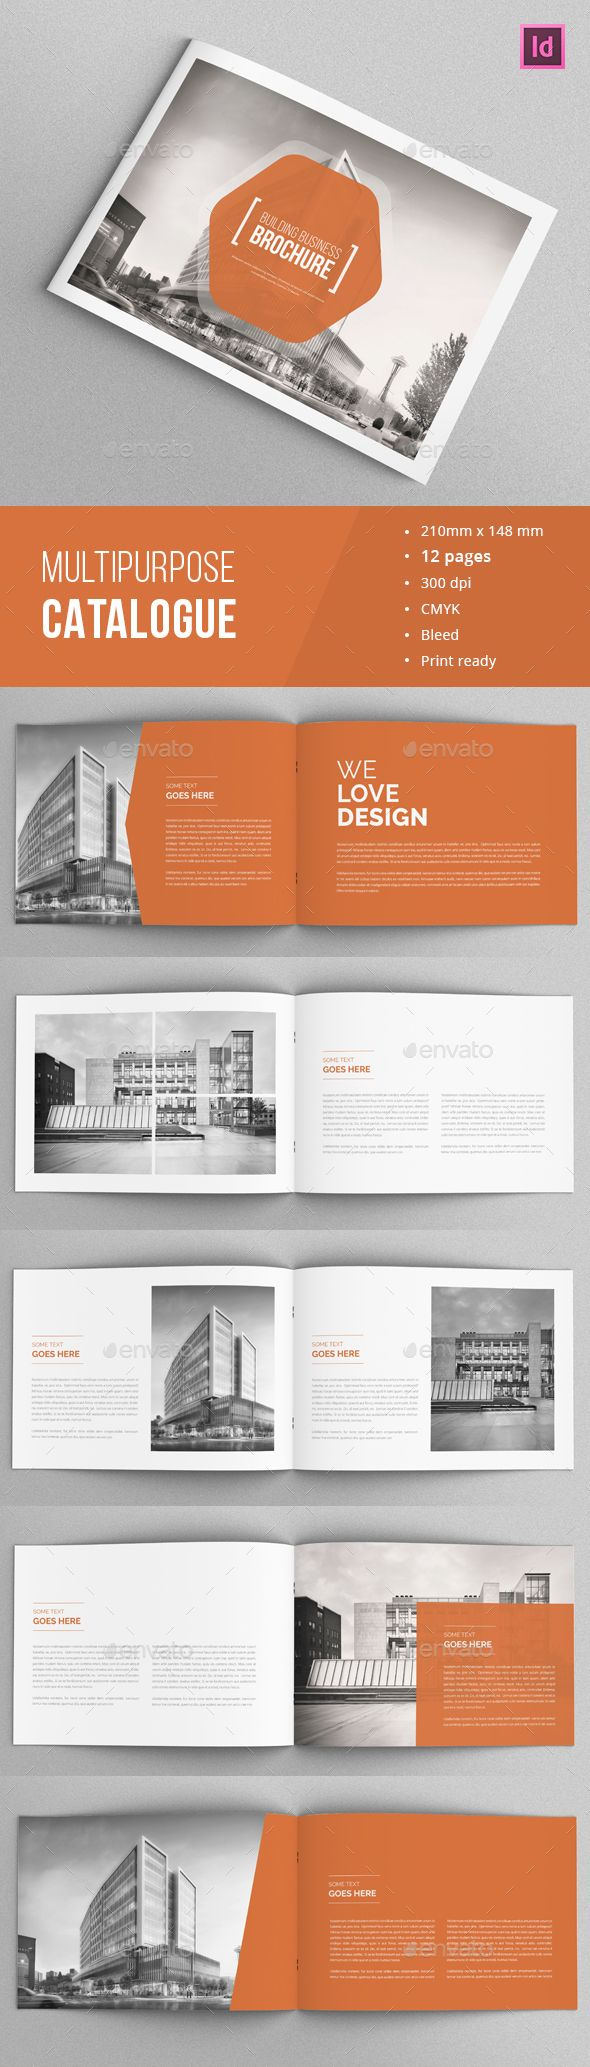 InDesign  Corporate Brochure / Portfolio  Template • Click here to download ! http://graphicriver.net/item/corporate-brochure-portfolio/15367430?ref=pxcr